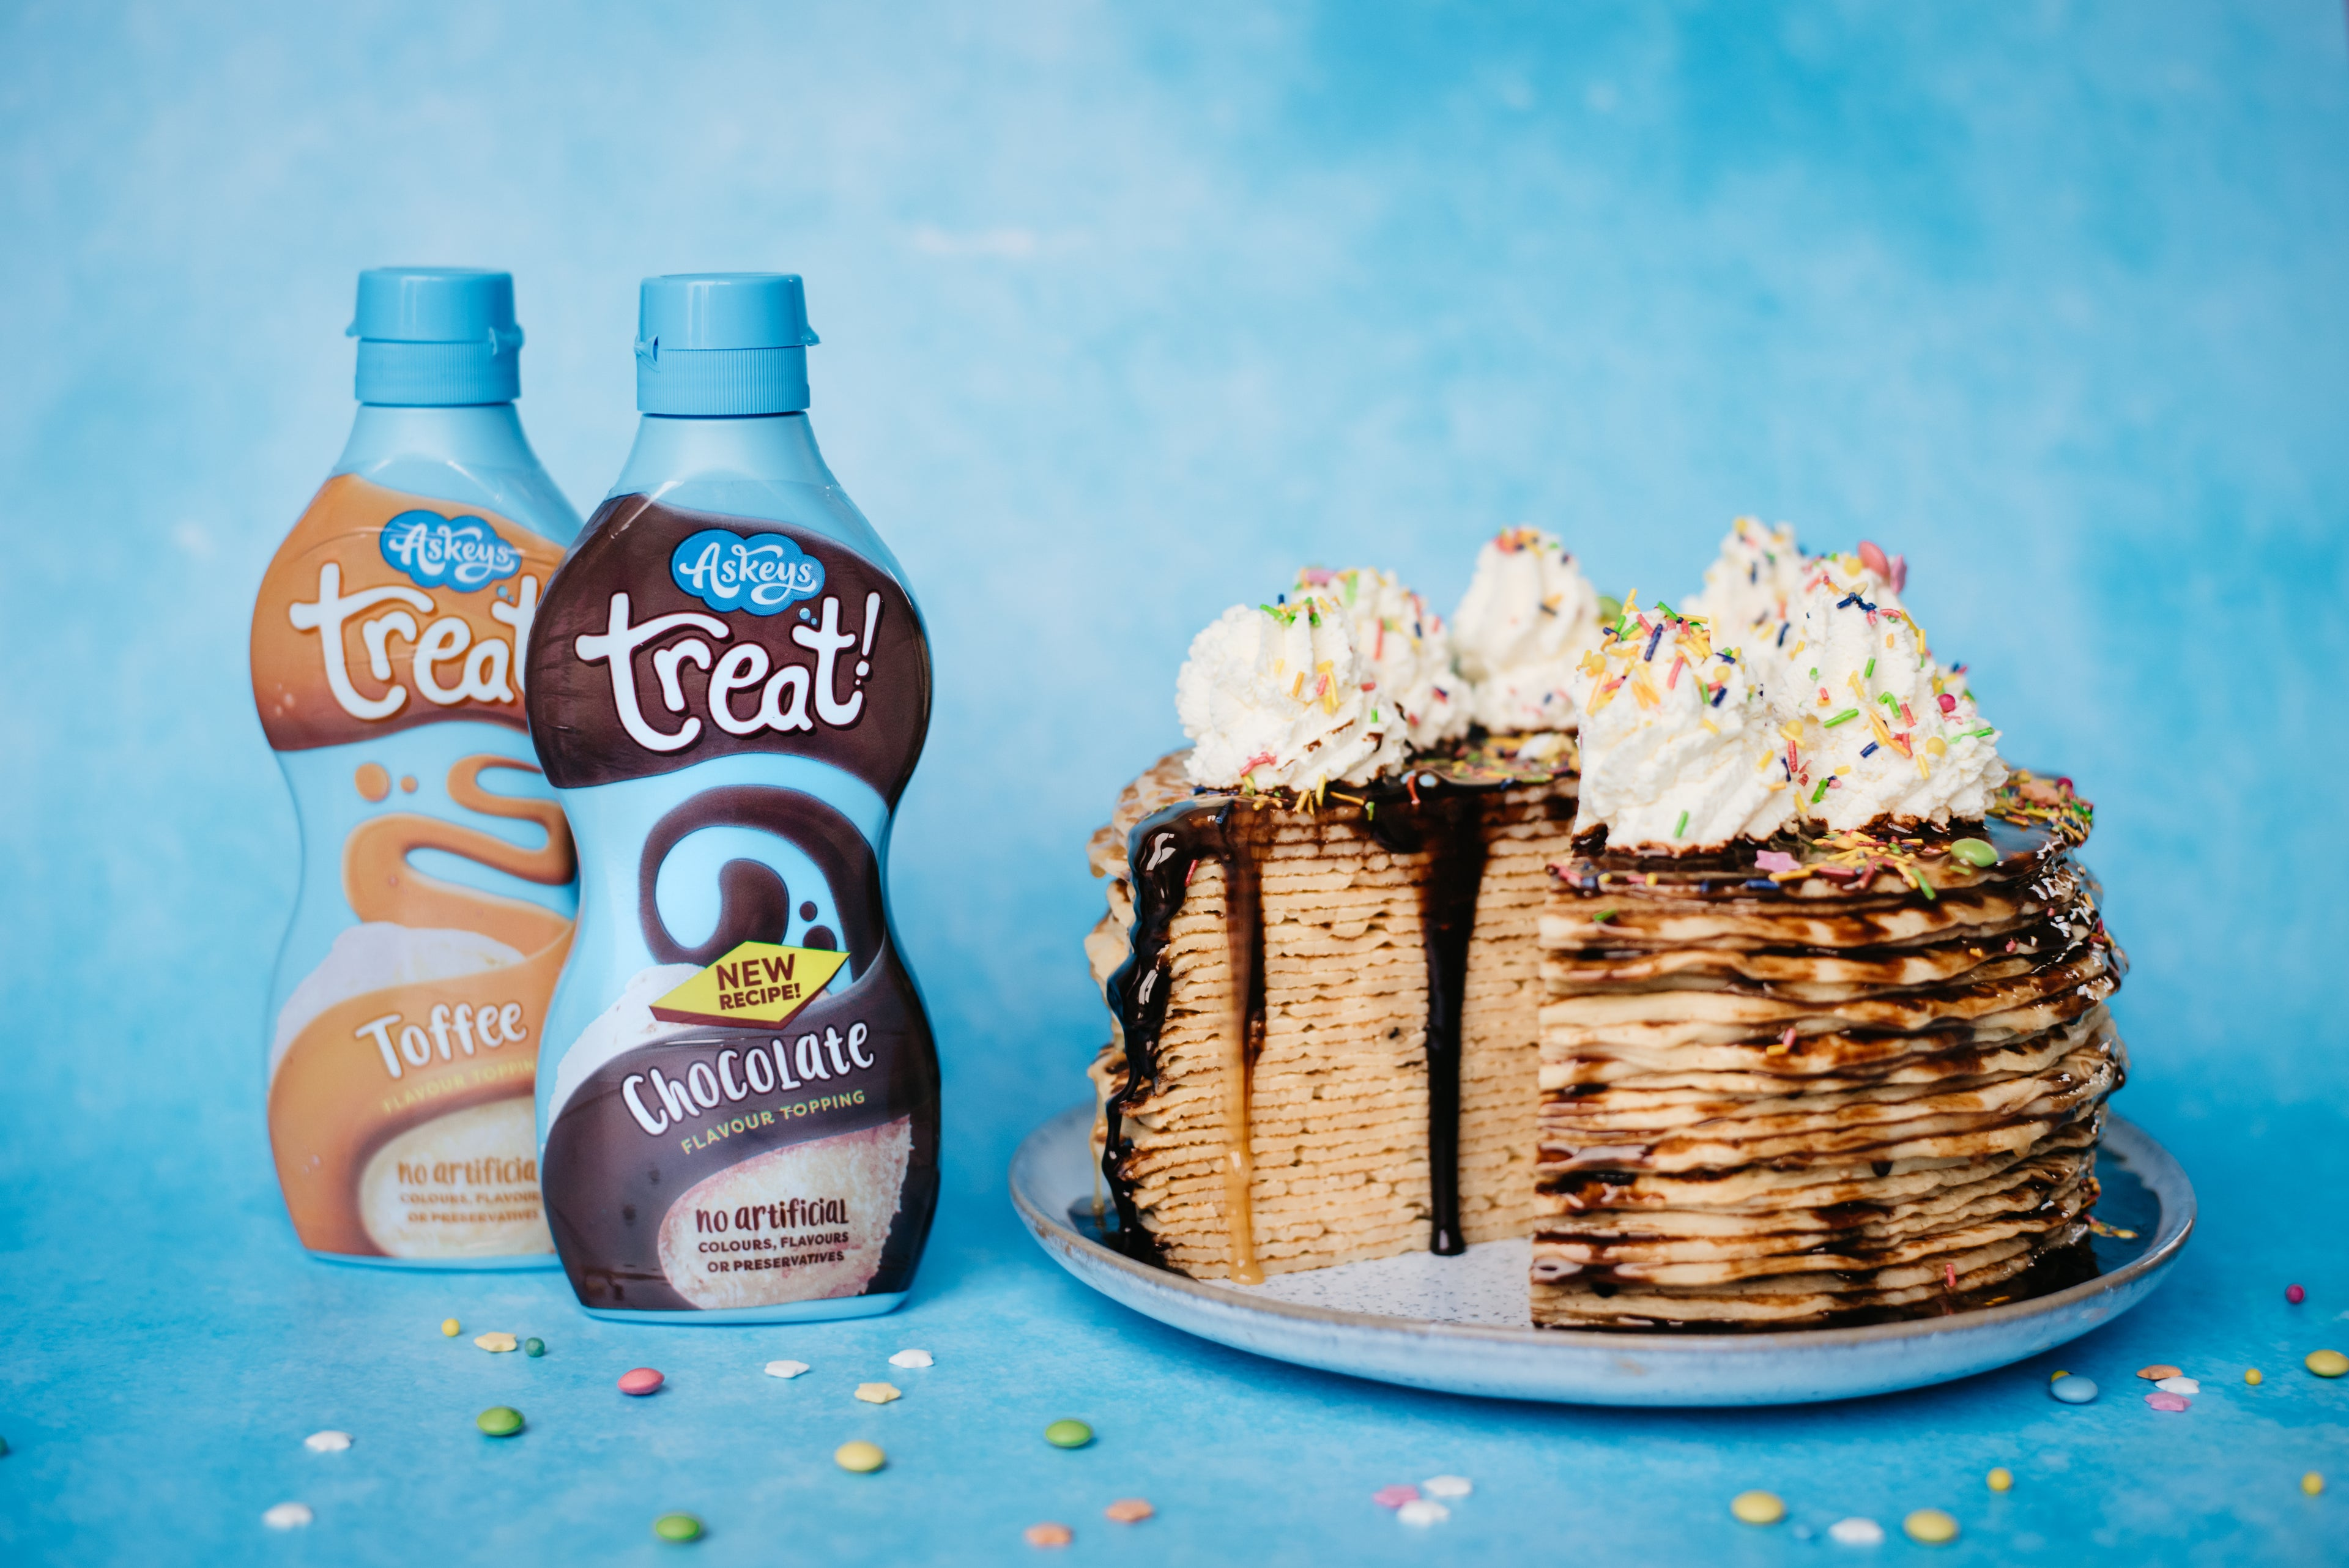 Crepe cake with slice removed, toffee and chocolate treat sauce bottles at side